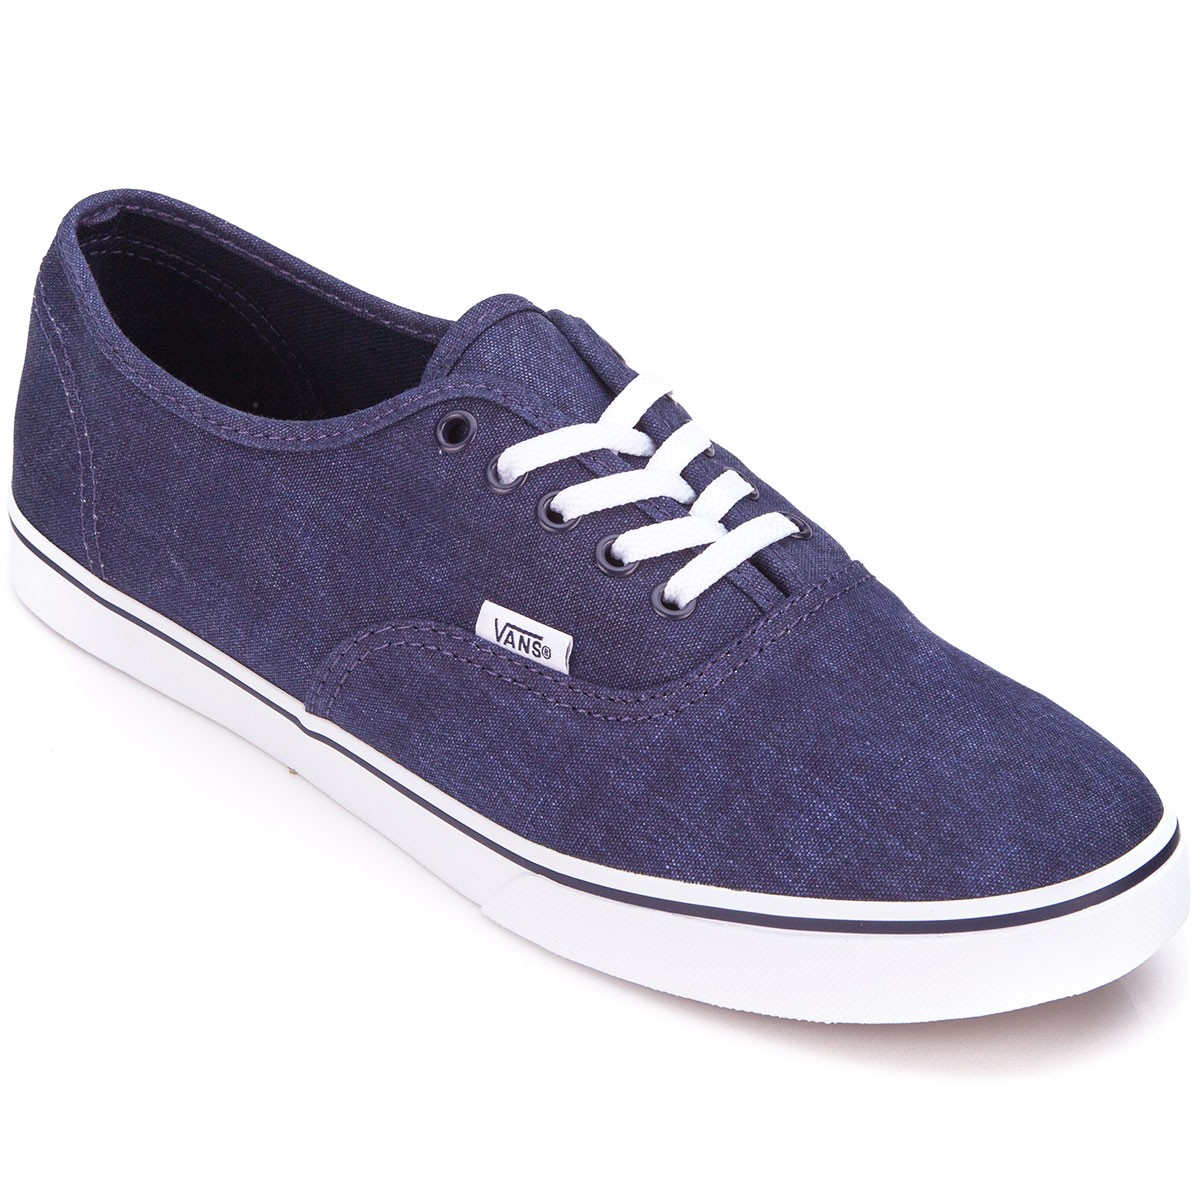 9086ebc6fee6 Vans Authentic Lo Pro Womens Shoes